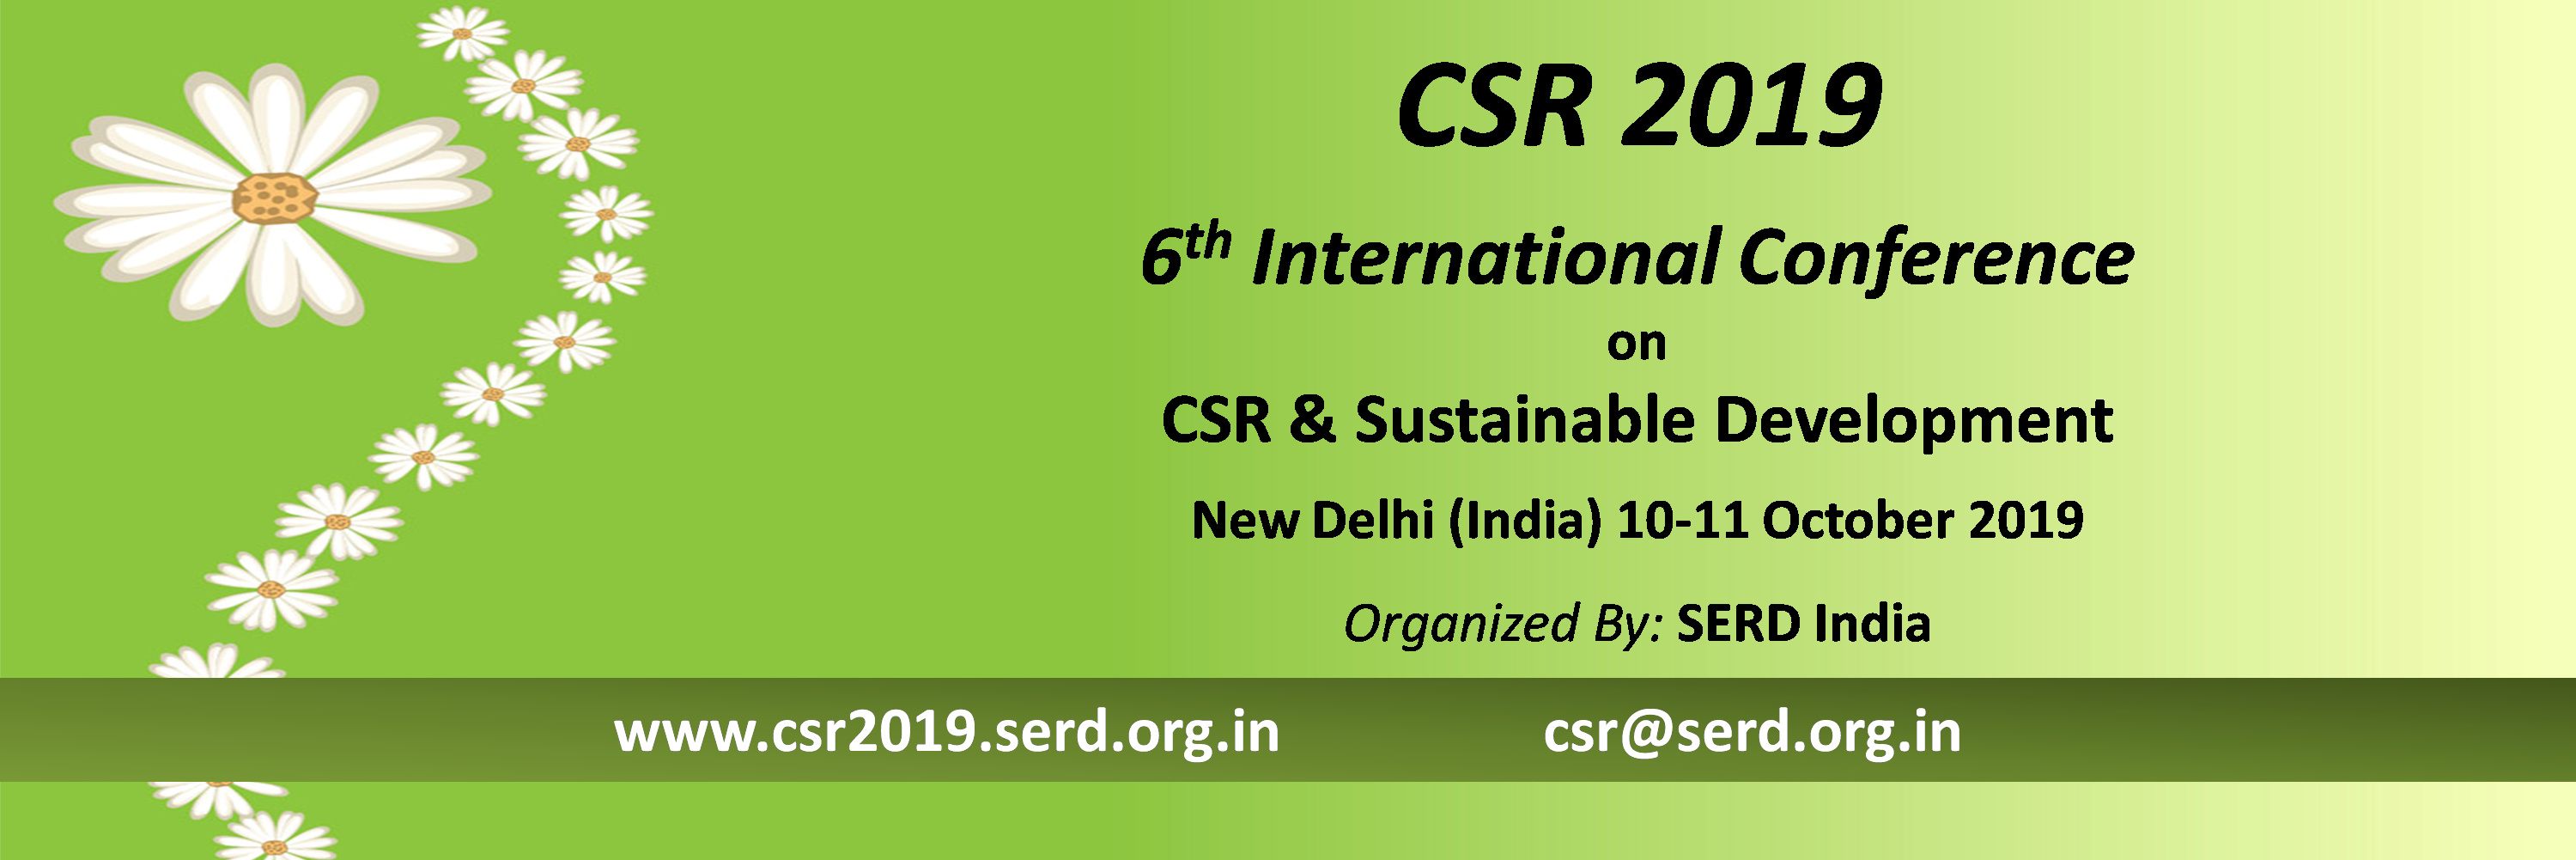 Slide2 Call for Papers CSR 2019